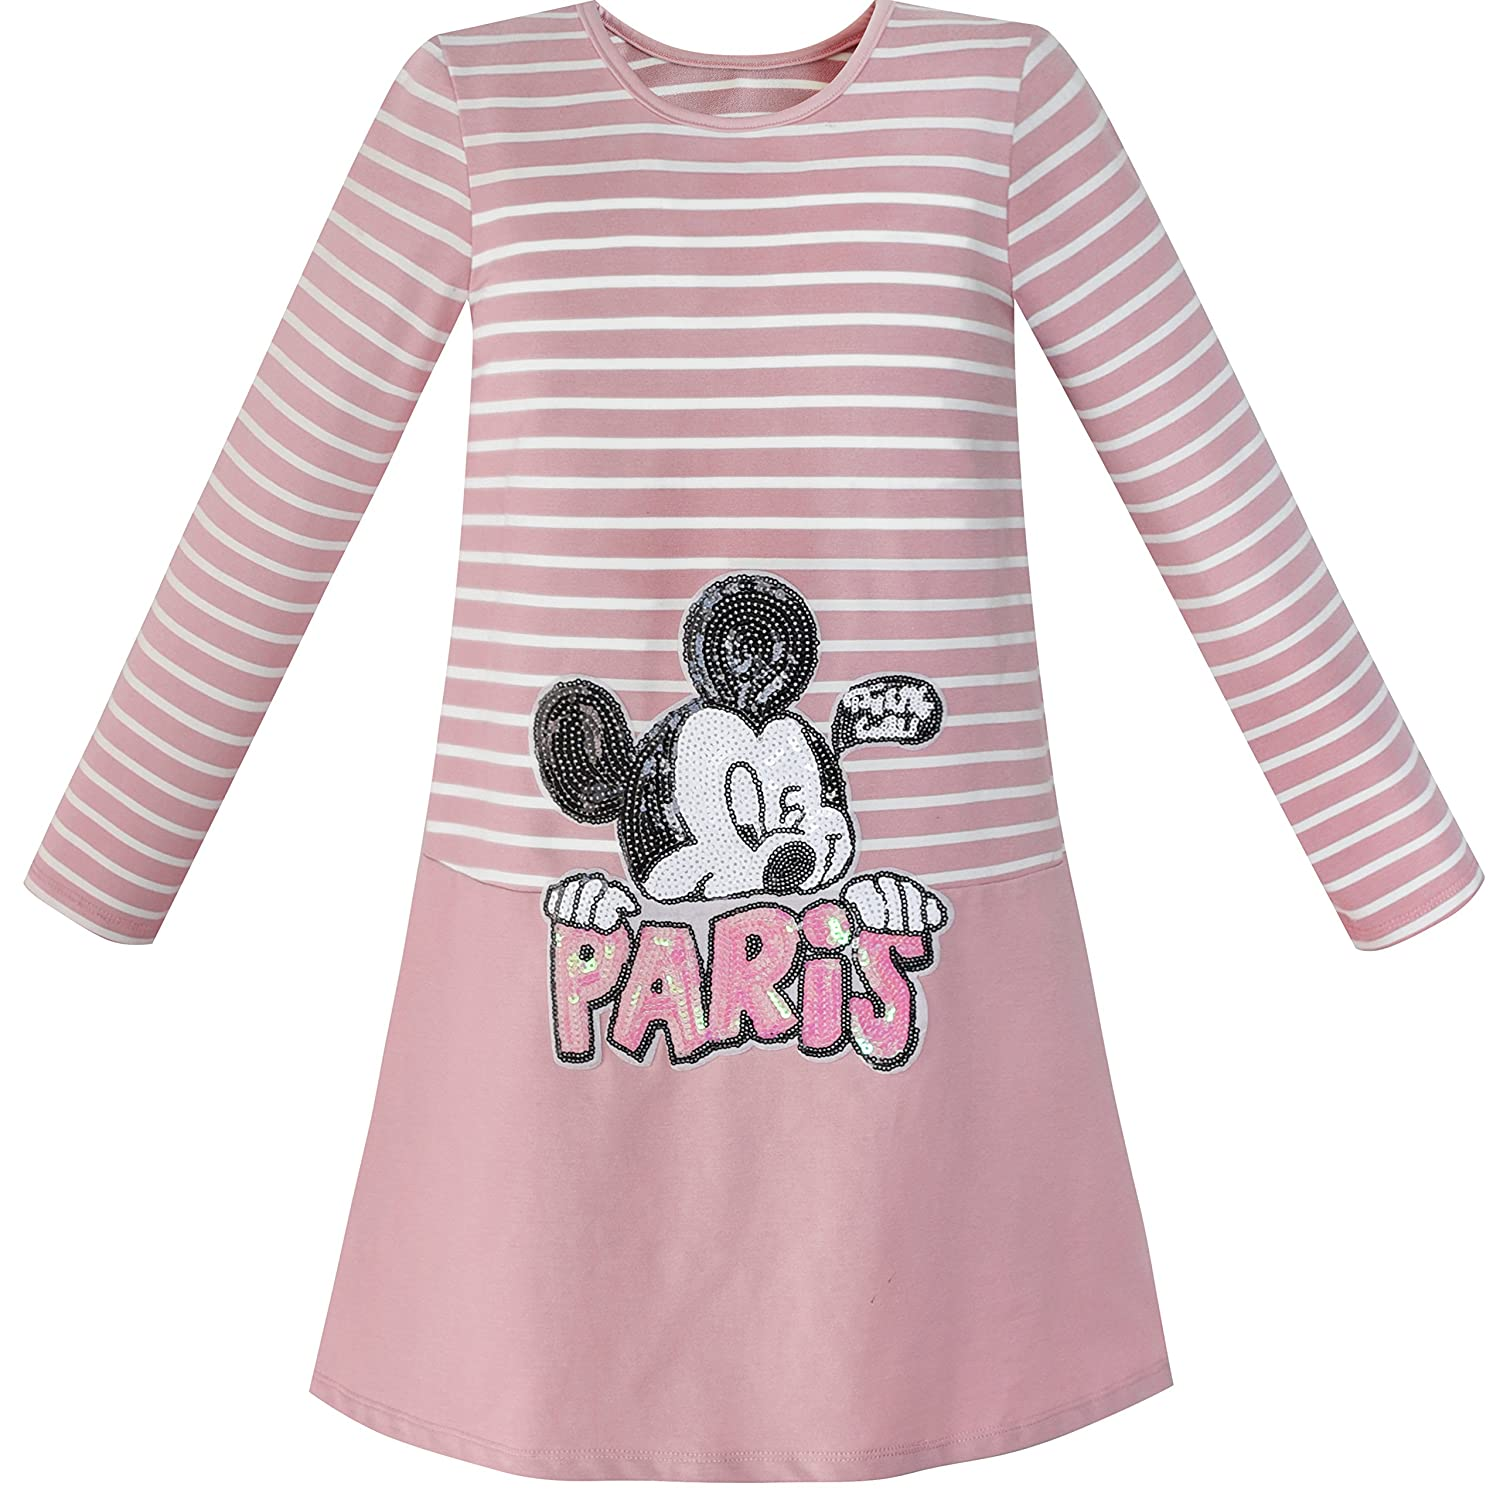 Sunny Fashion Girls Dress Stripe Cartoon Embroidery Long Sleeve Cotton Dress